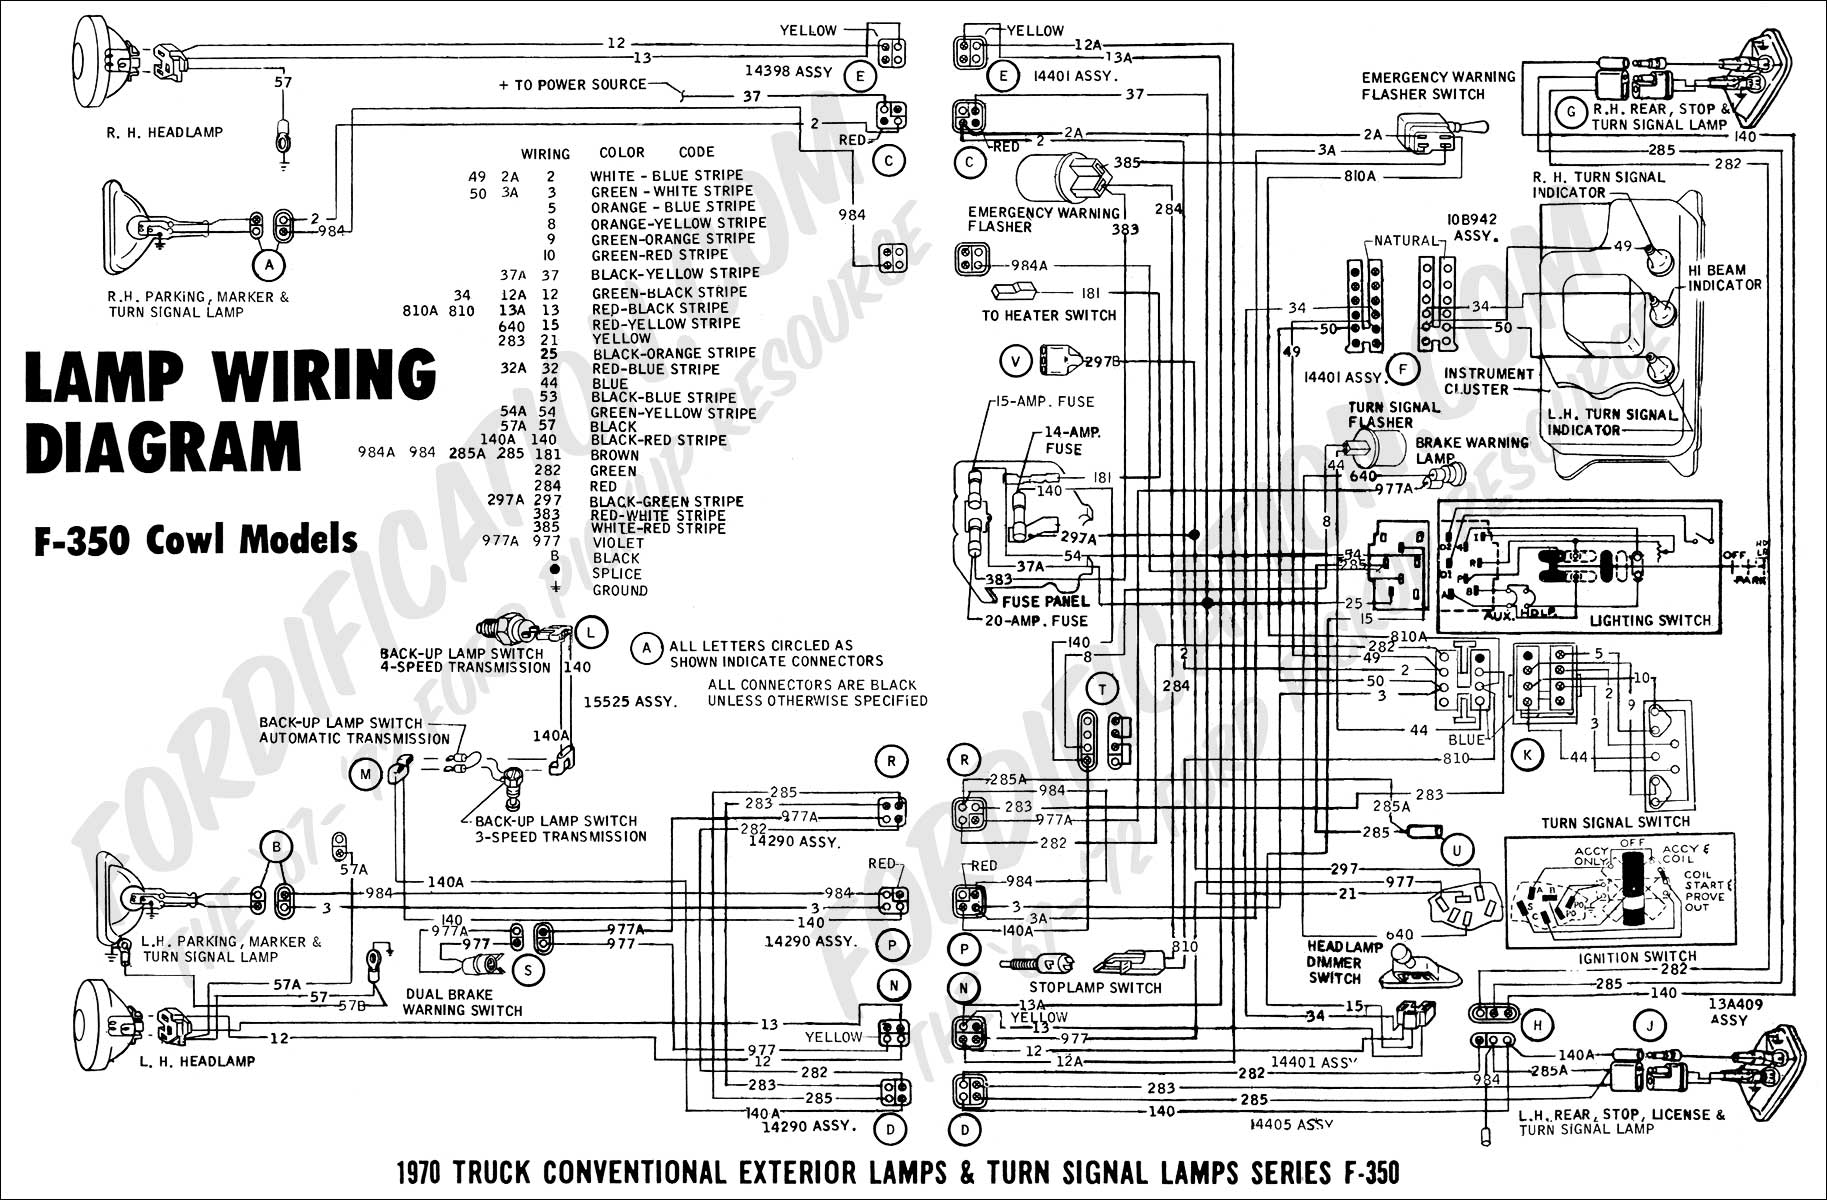 Ford Wiring Diagrams Diagram Data 2001 Volvo F250 Simple Wire F350 The Portal And